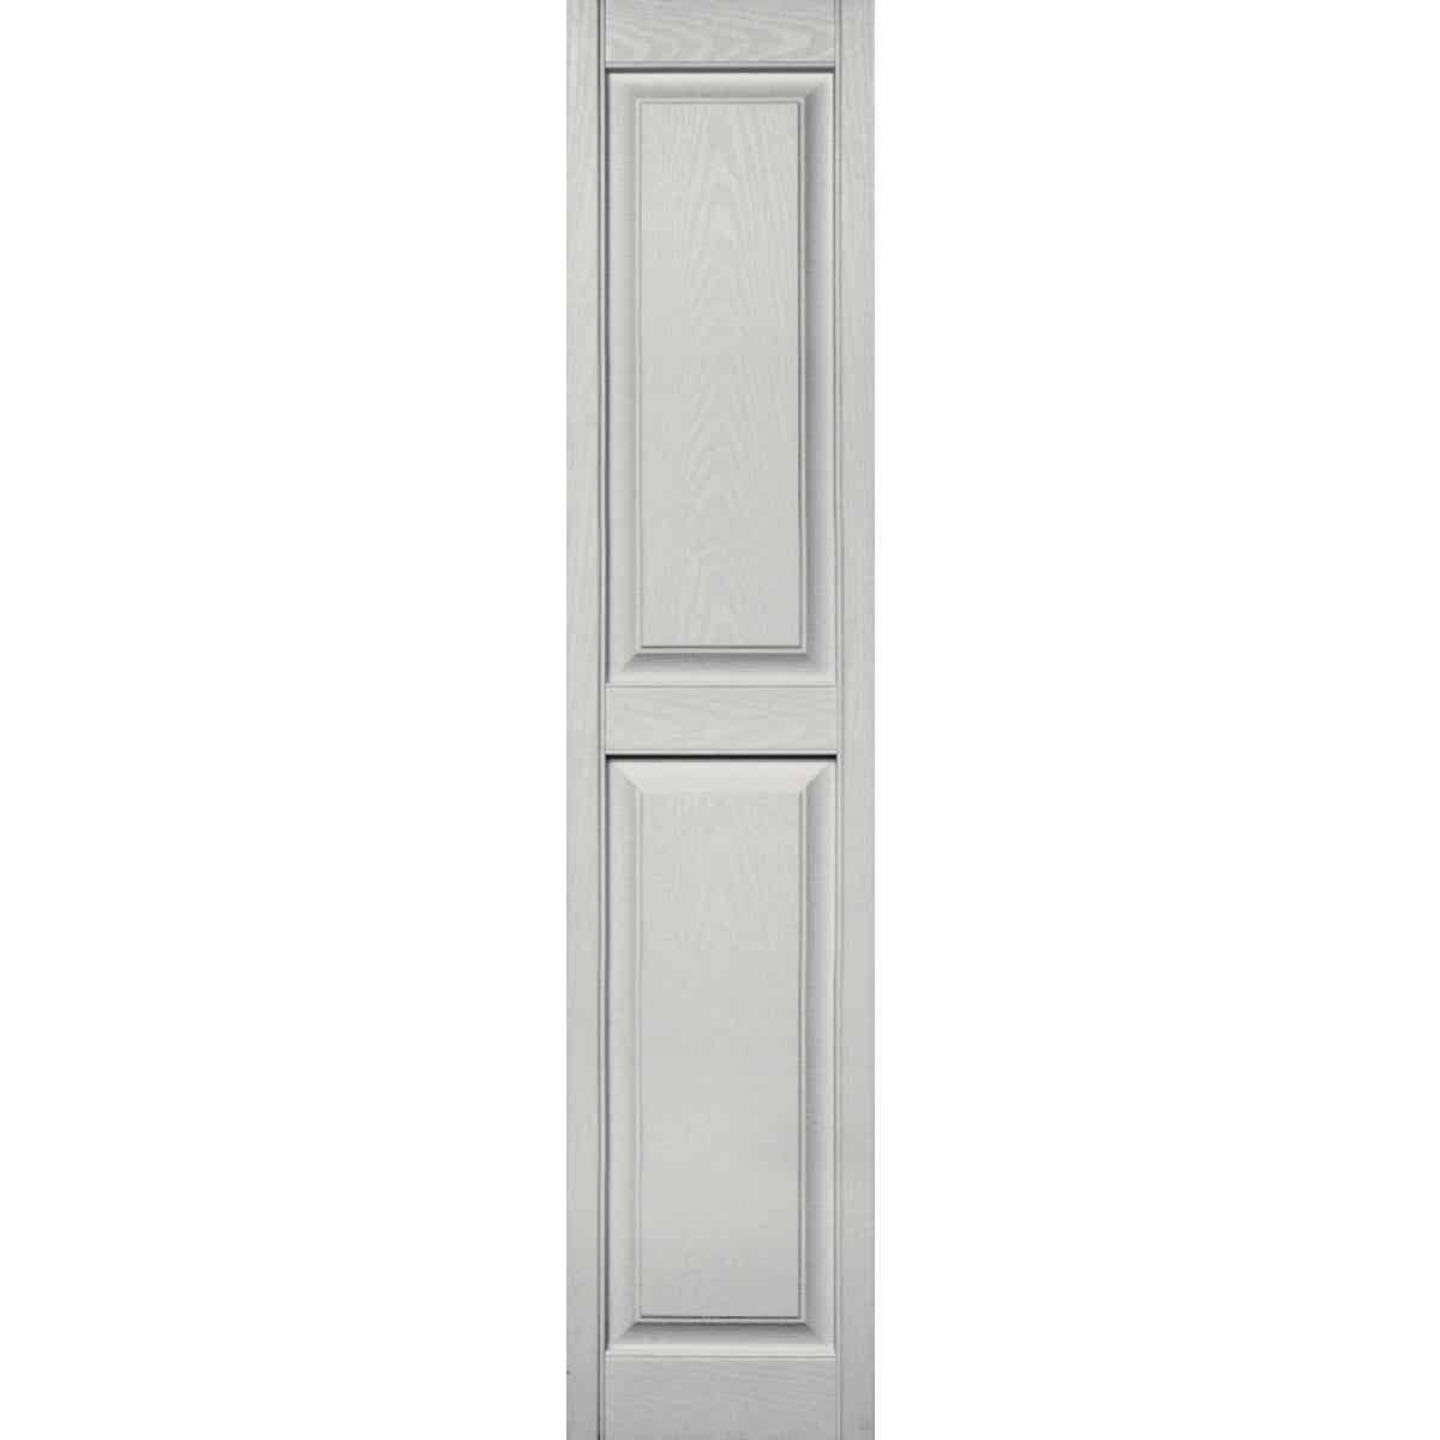 Builders Edge 15 in. x 71 in. Paintable Panel Shutter, (2-Pack) Image 1